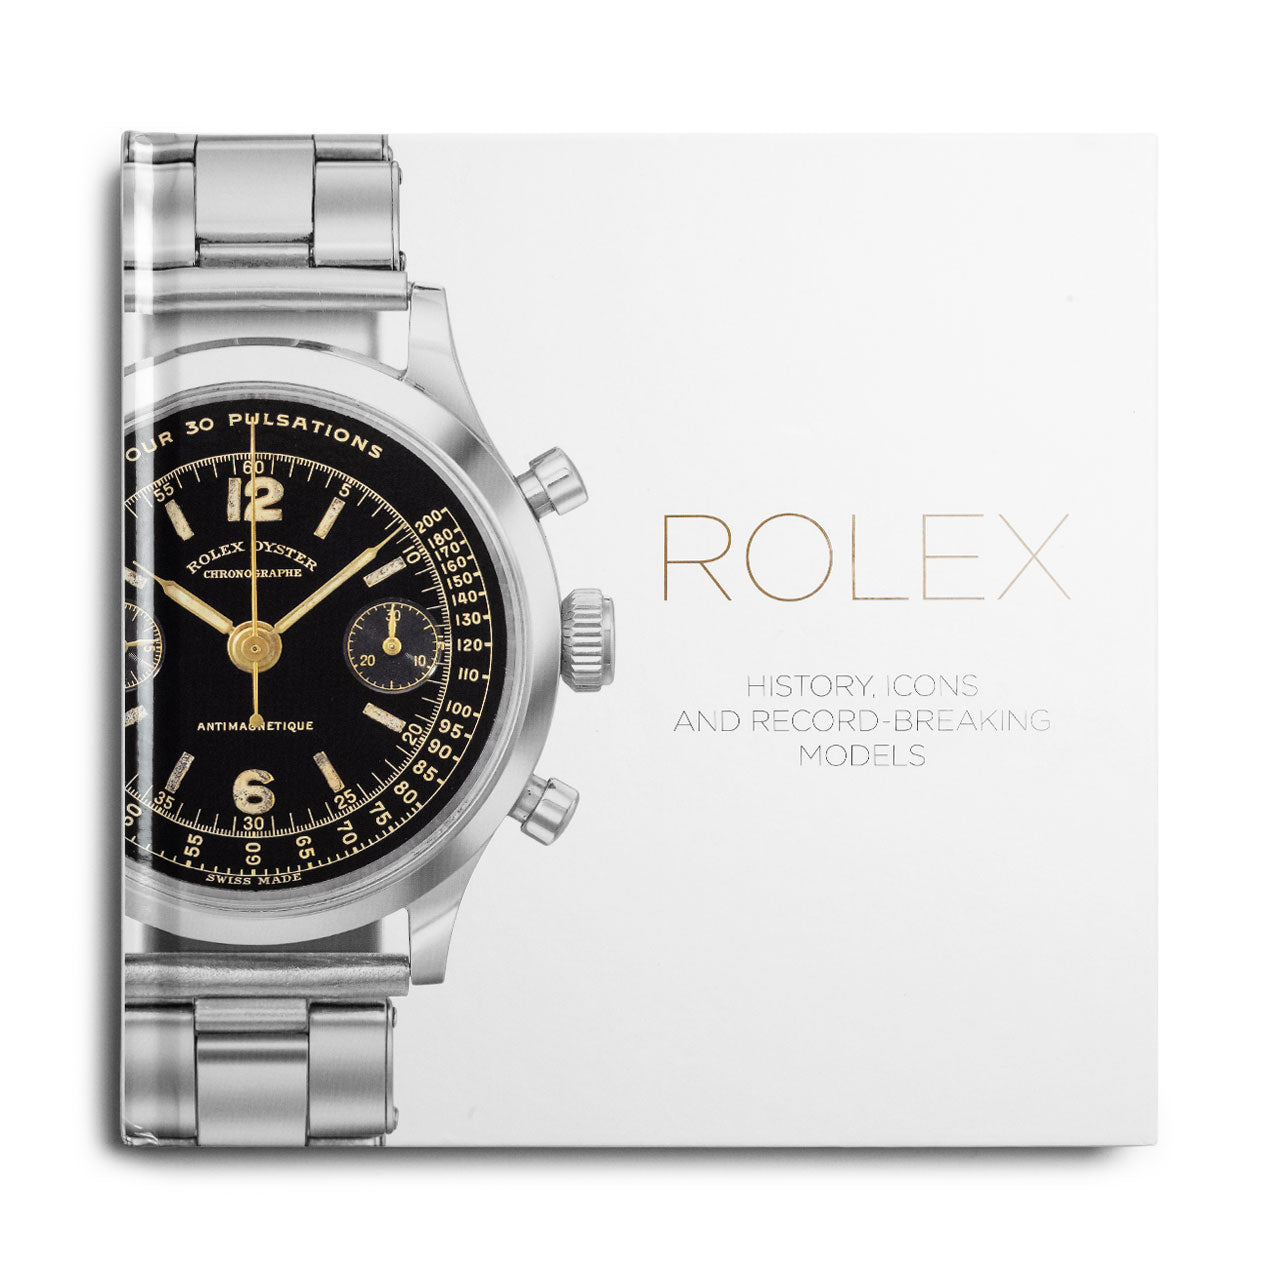 Rolex: History, Icons, and Record-Breaking Models